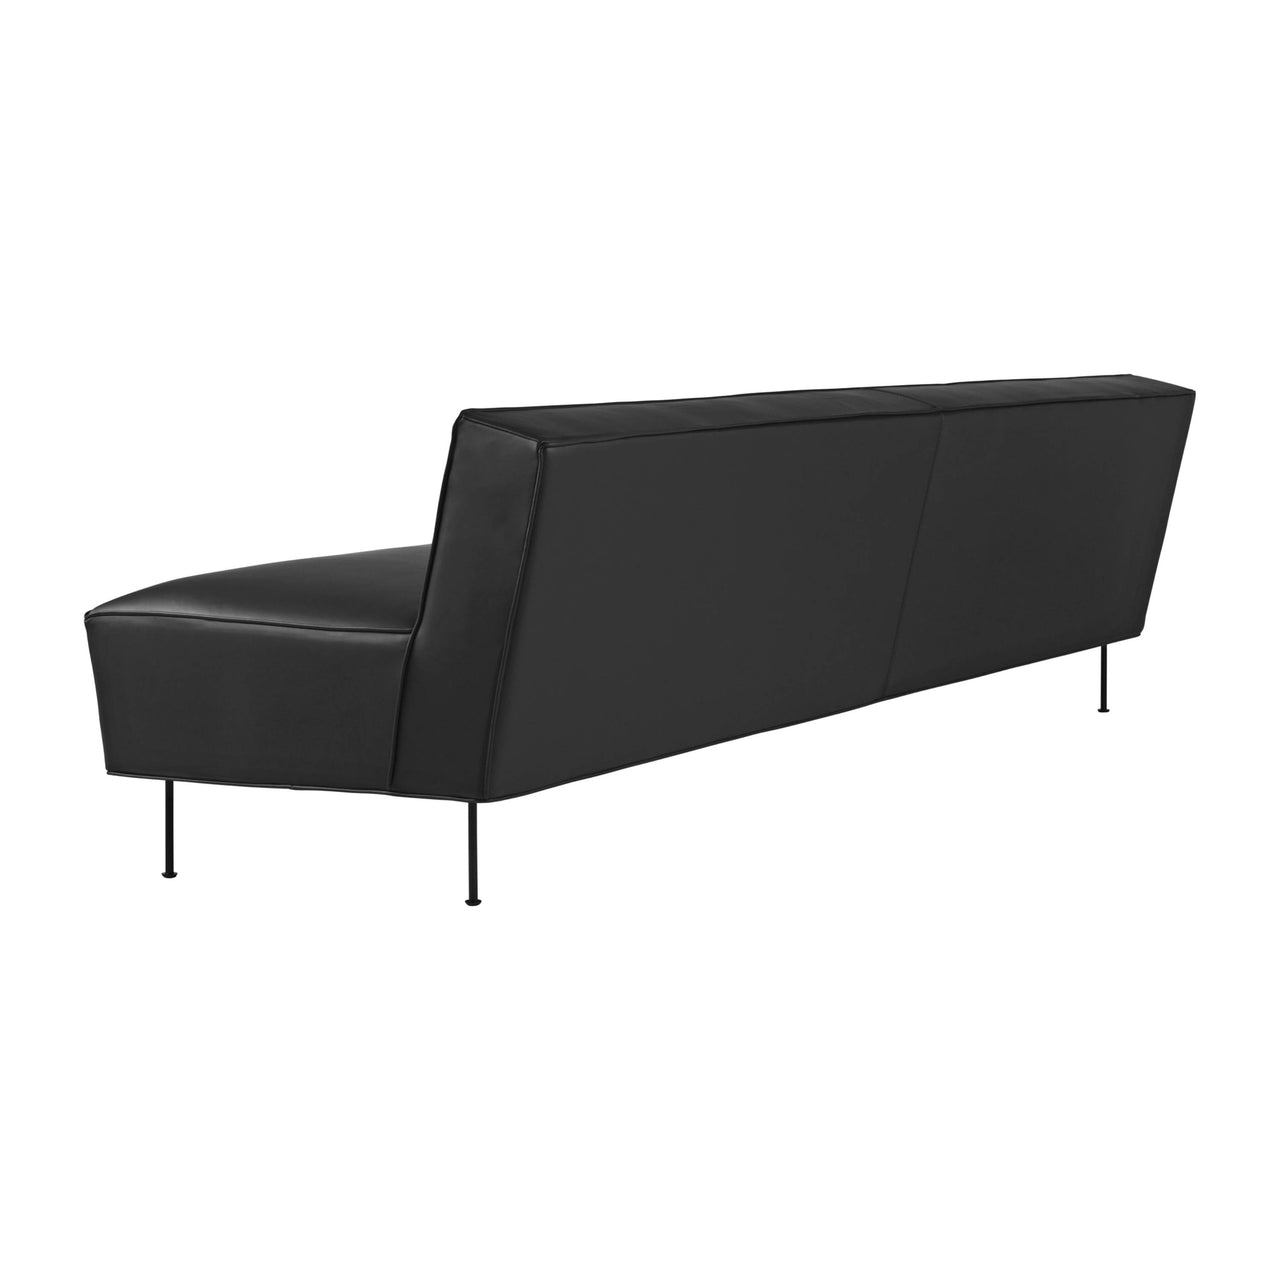 Modern Line Sofa: Medium + Black Leg Finish